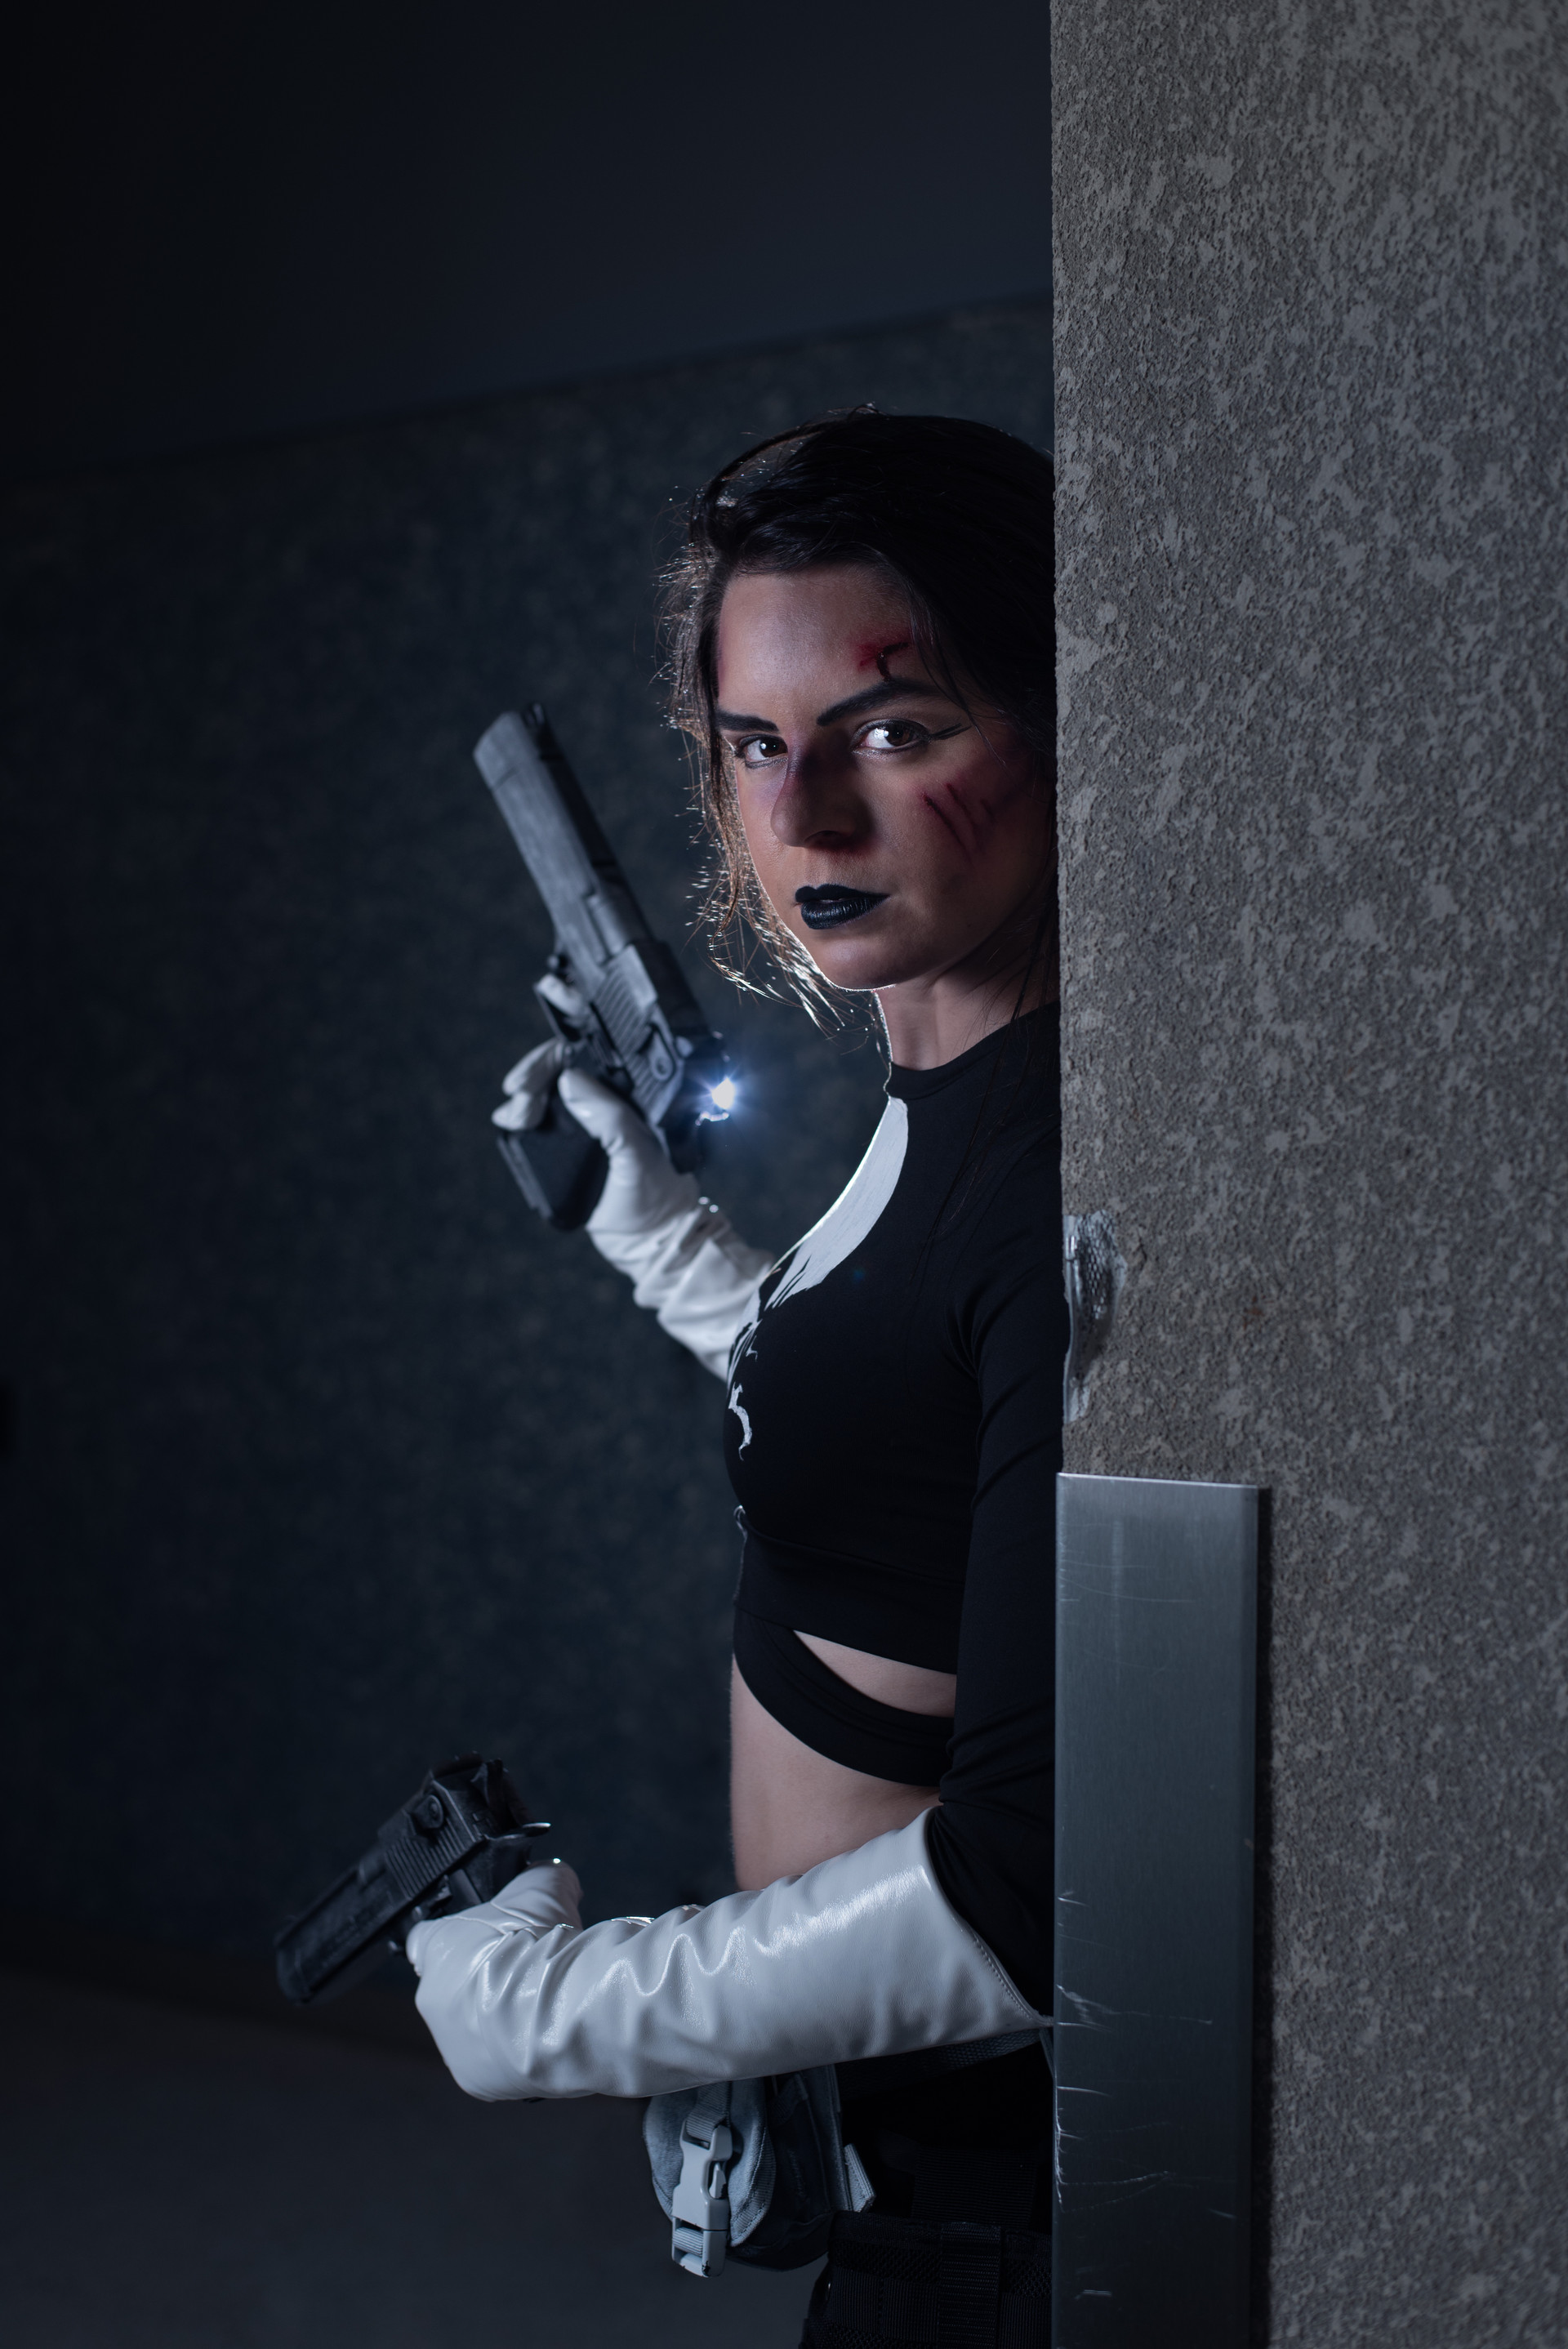 Marvel's the Punisher cosplayer, @ziacosplay